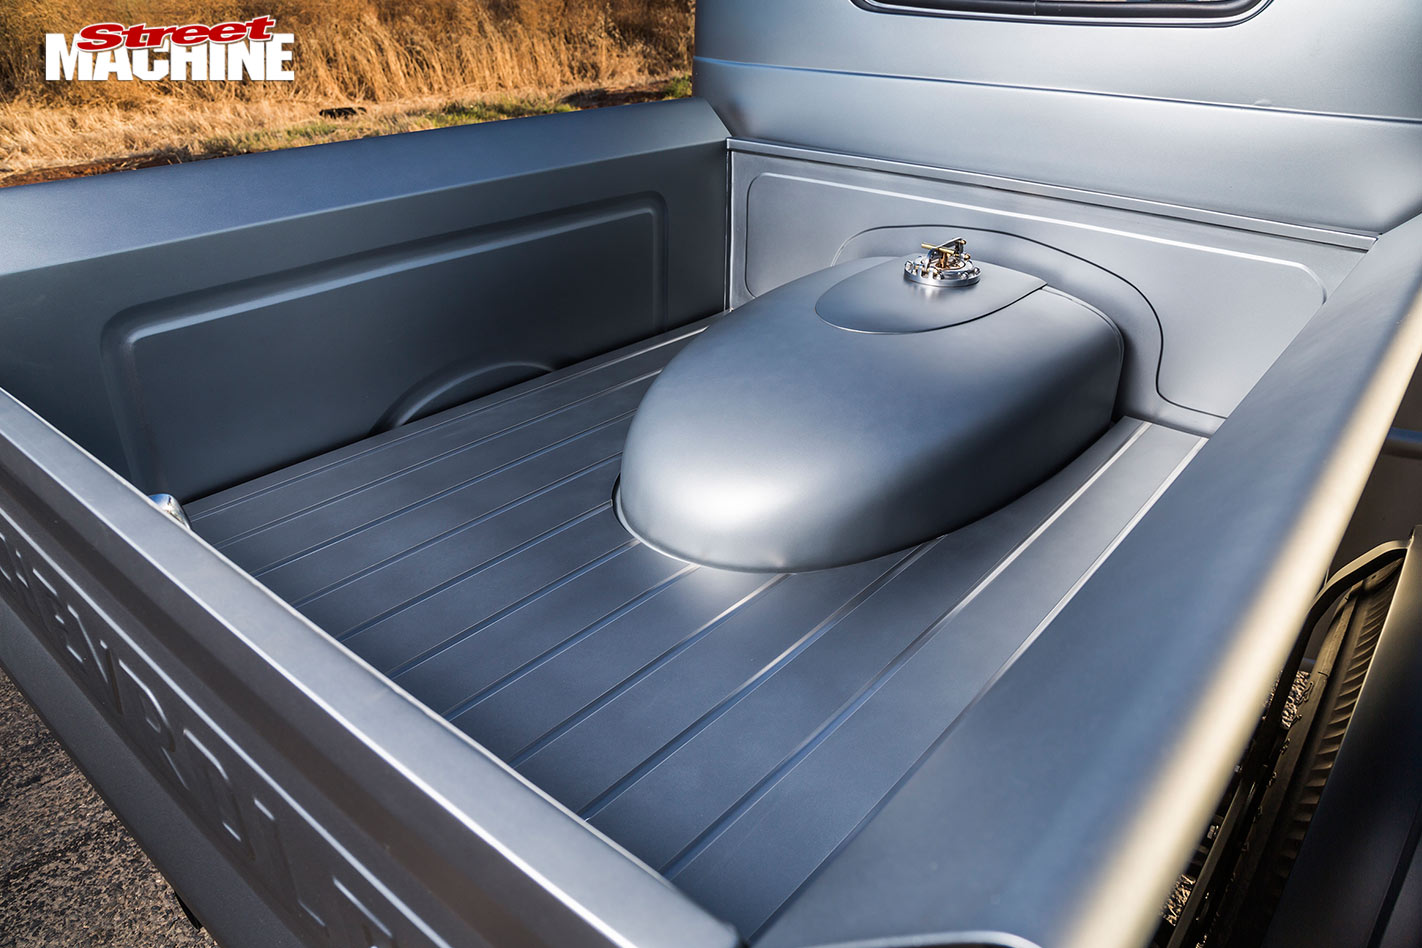 Chev pick-up tray